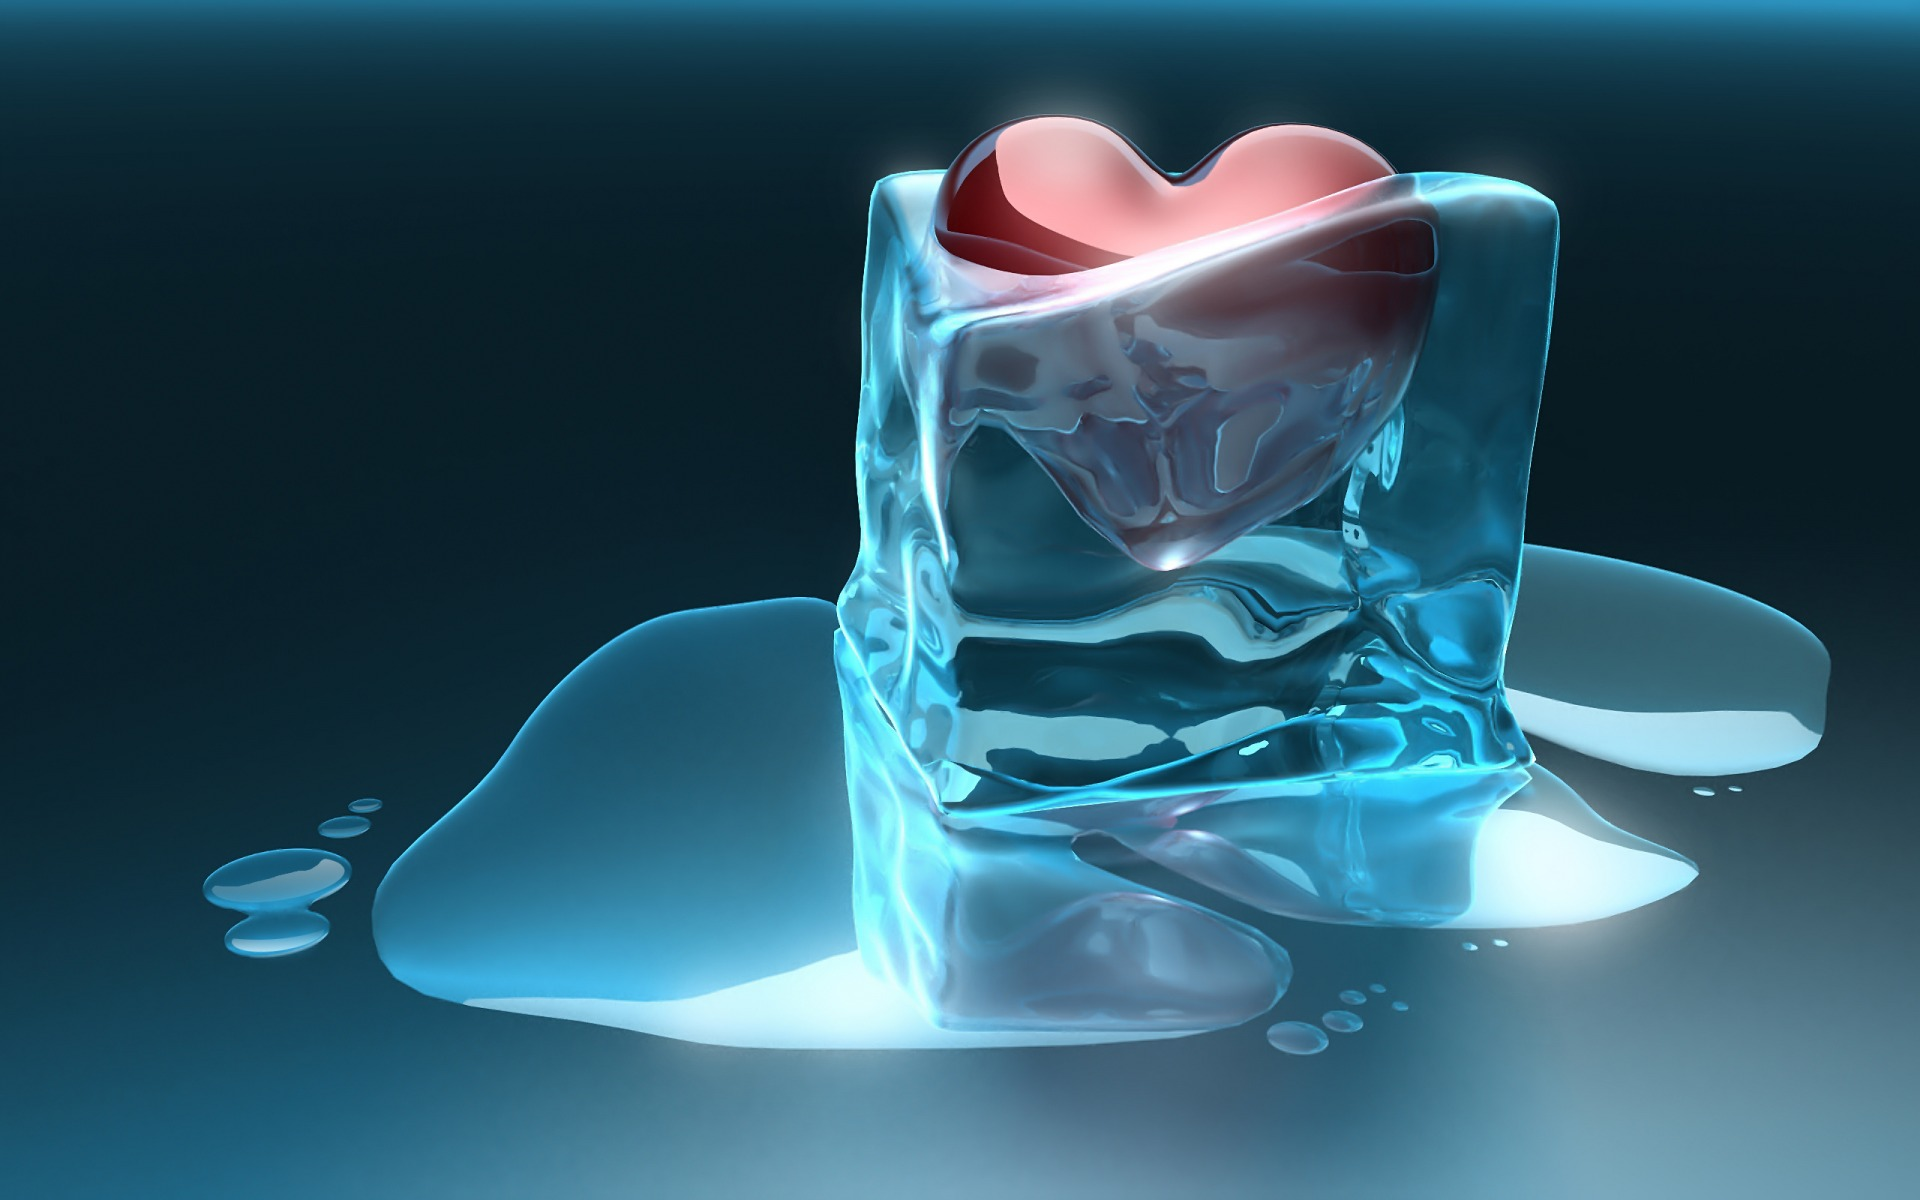 Frozen Heart Wallpaper 3D Models 3D Wallpapers in jpg format for     Frozen Heart Wallpaper 3D Models 3D Wallpapers